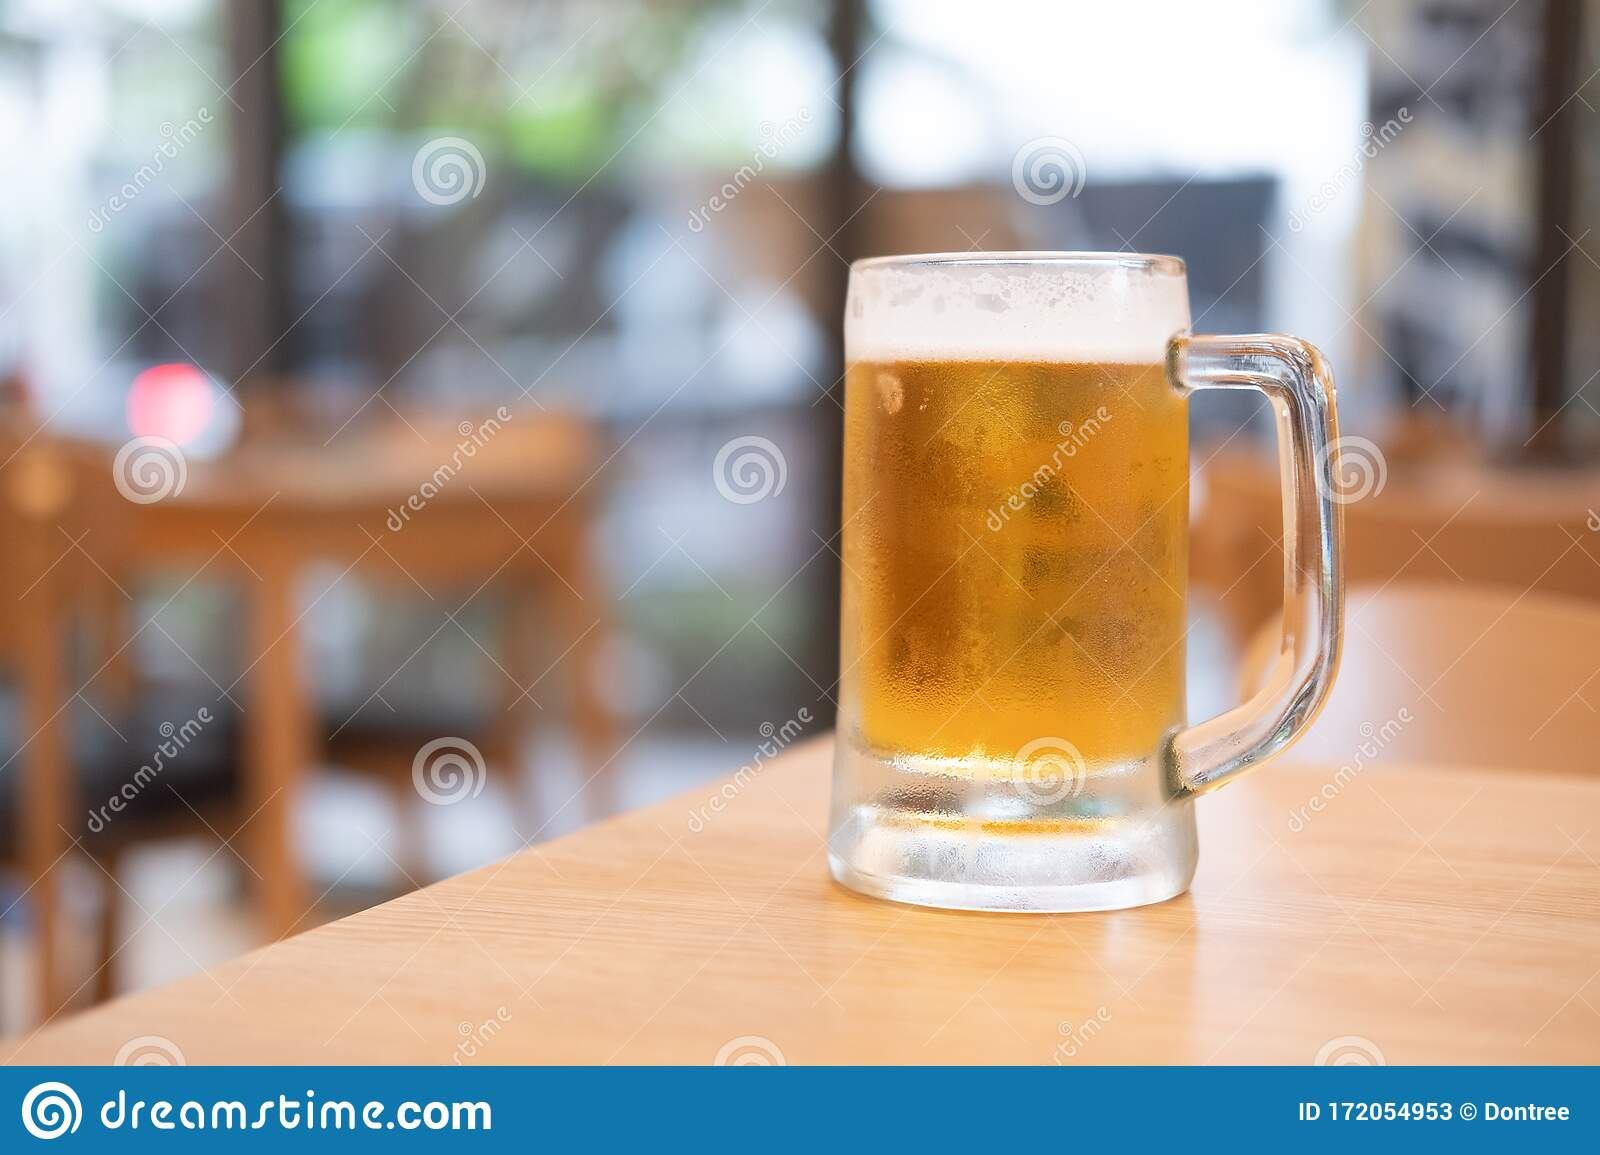 Glass Of Beer On Wooden Table Stock Image Image Of Full Close 172054953